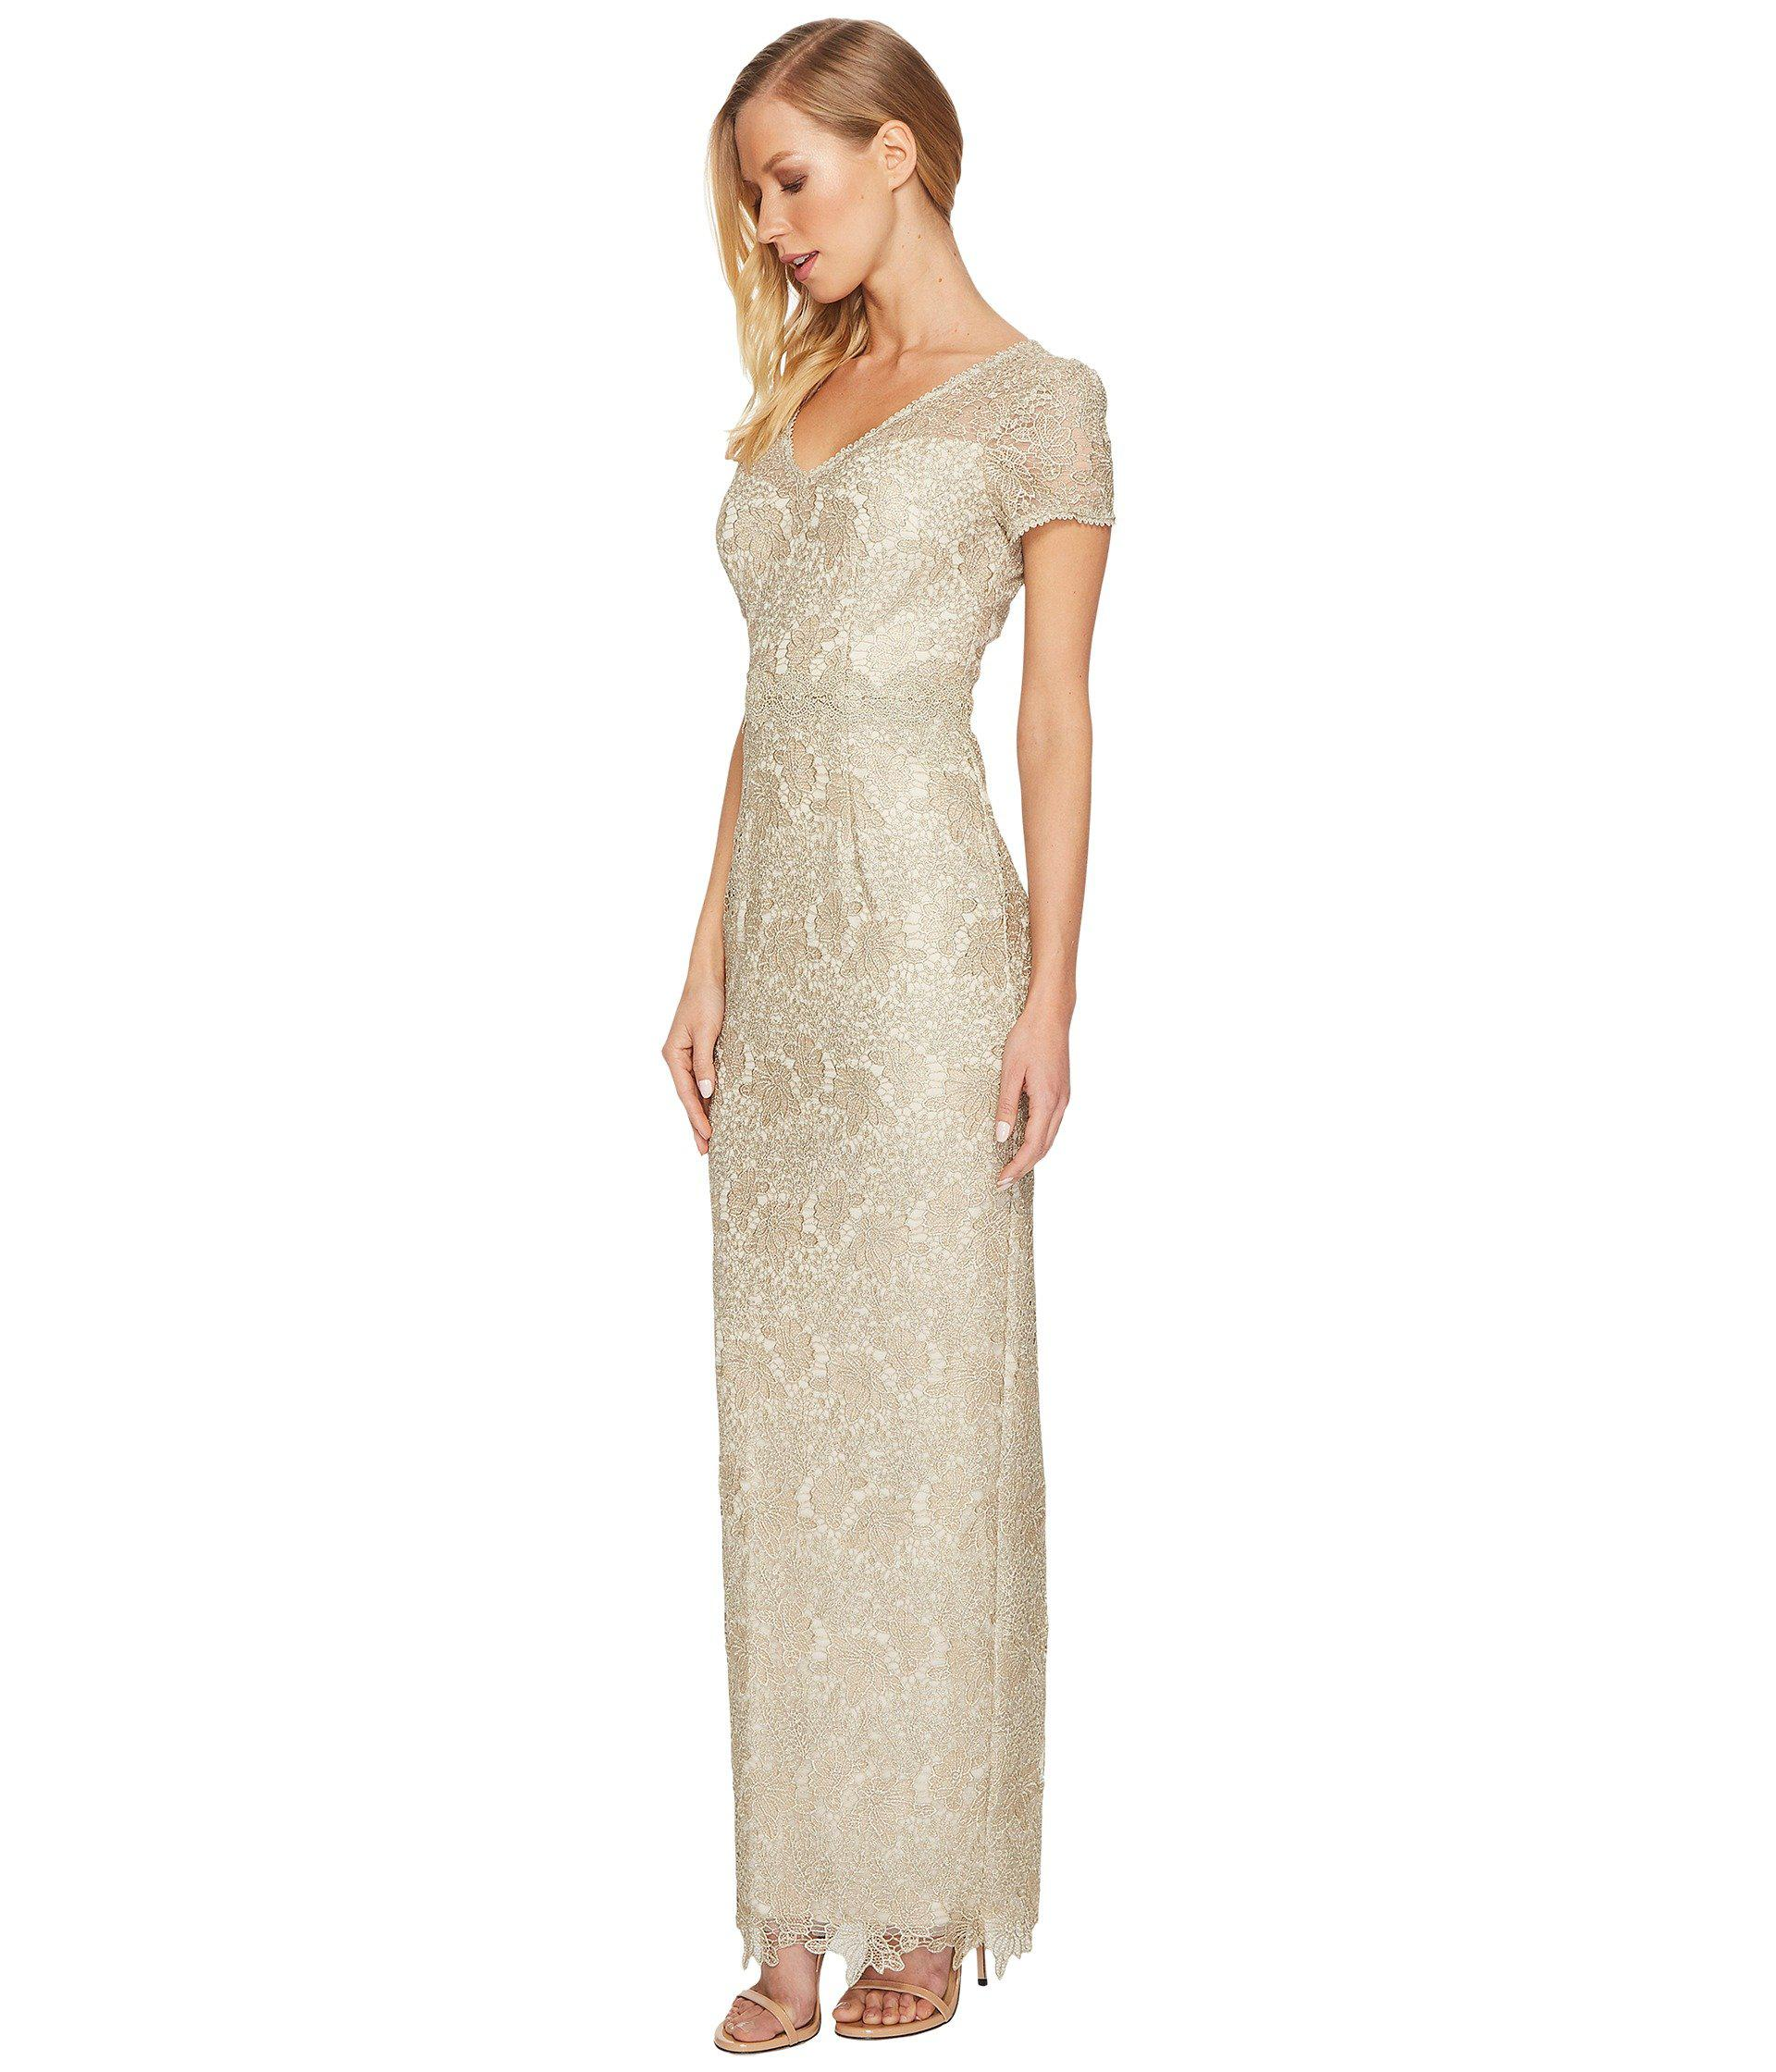 6a7c1ca3df2 Lyst - Adrianna Papell Short Sleeve V-neck Long Metallic Lace Gown in  Metallic - Save 11%